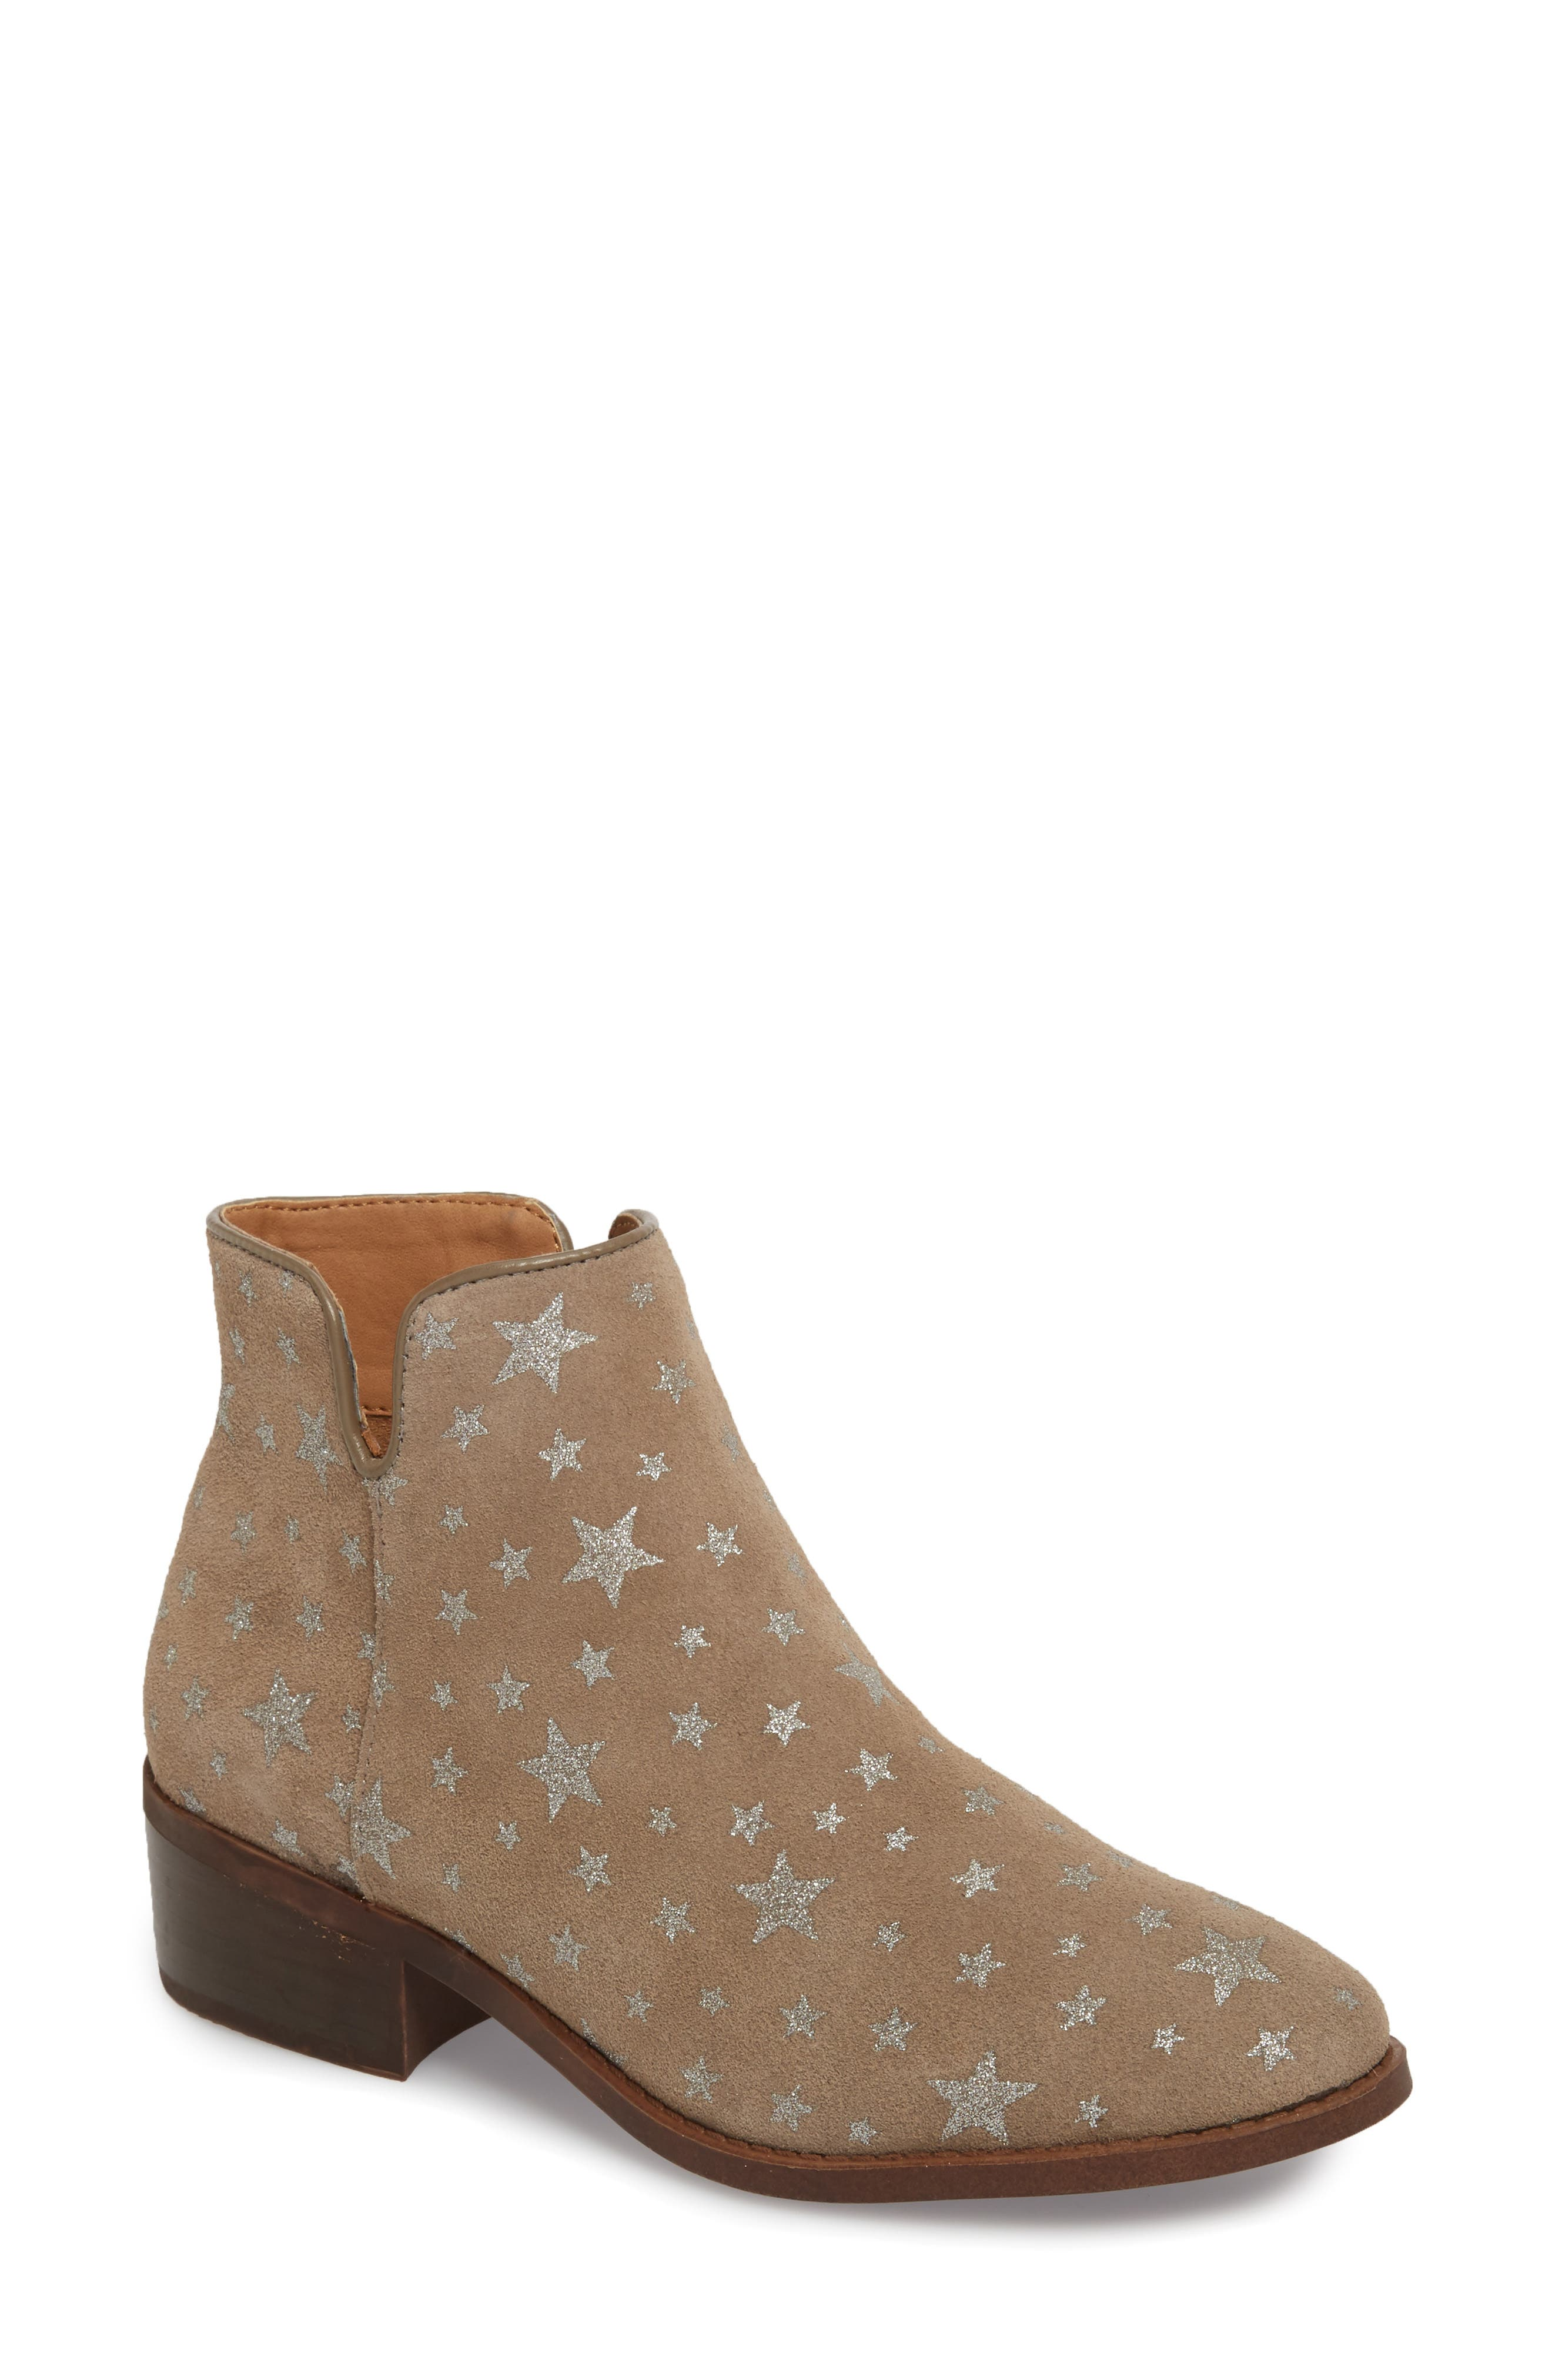 Delila Bootie,                             Main thumbnail 1, color,                             Taupe Multi Suede